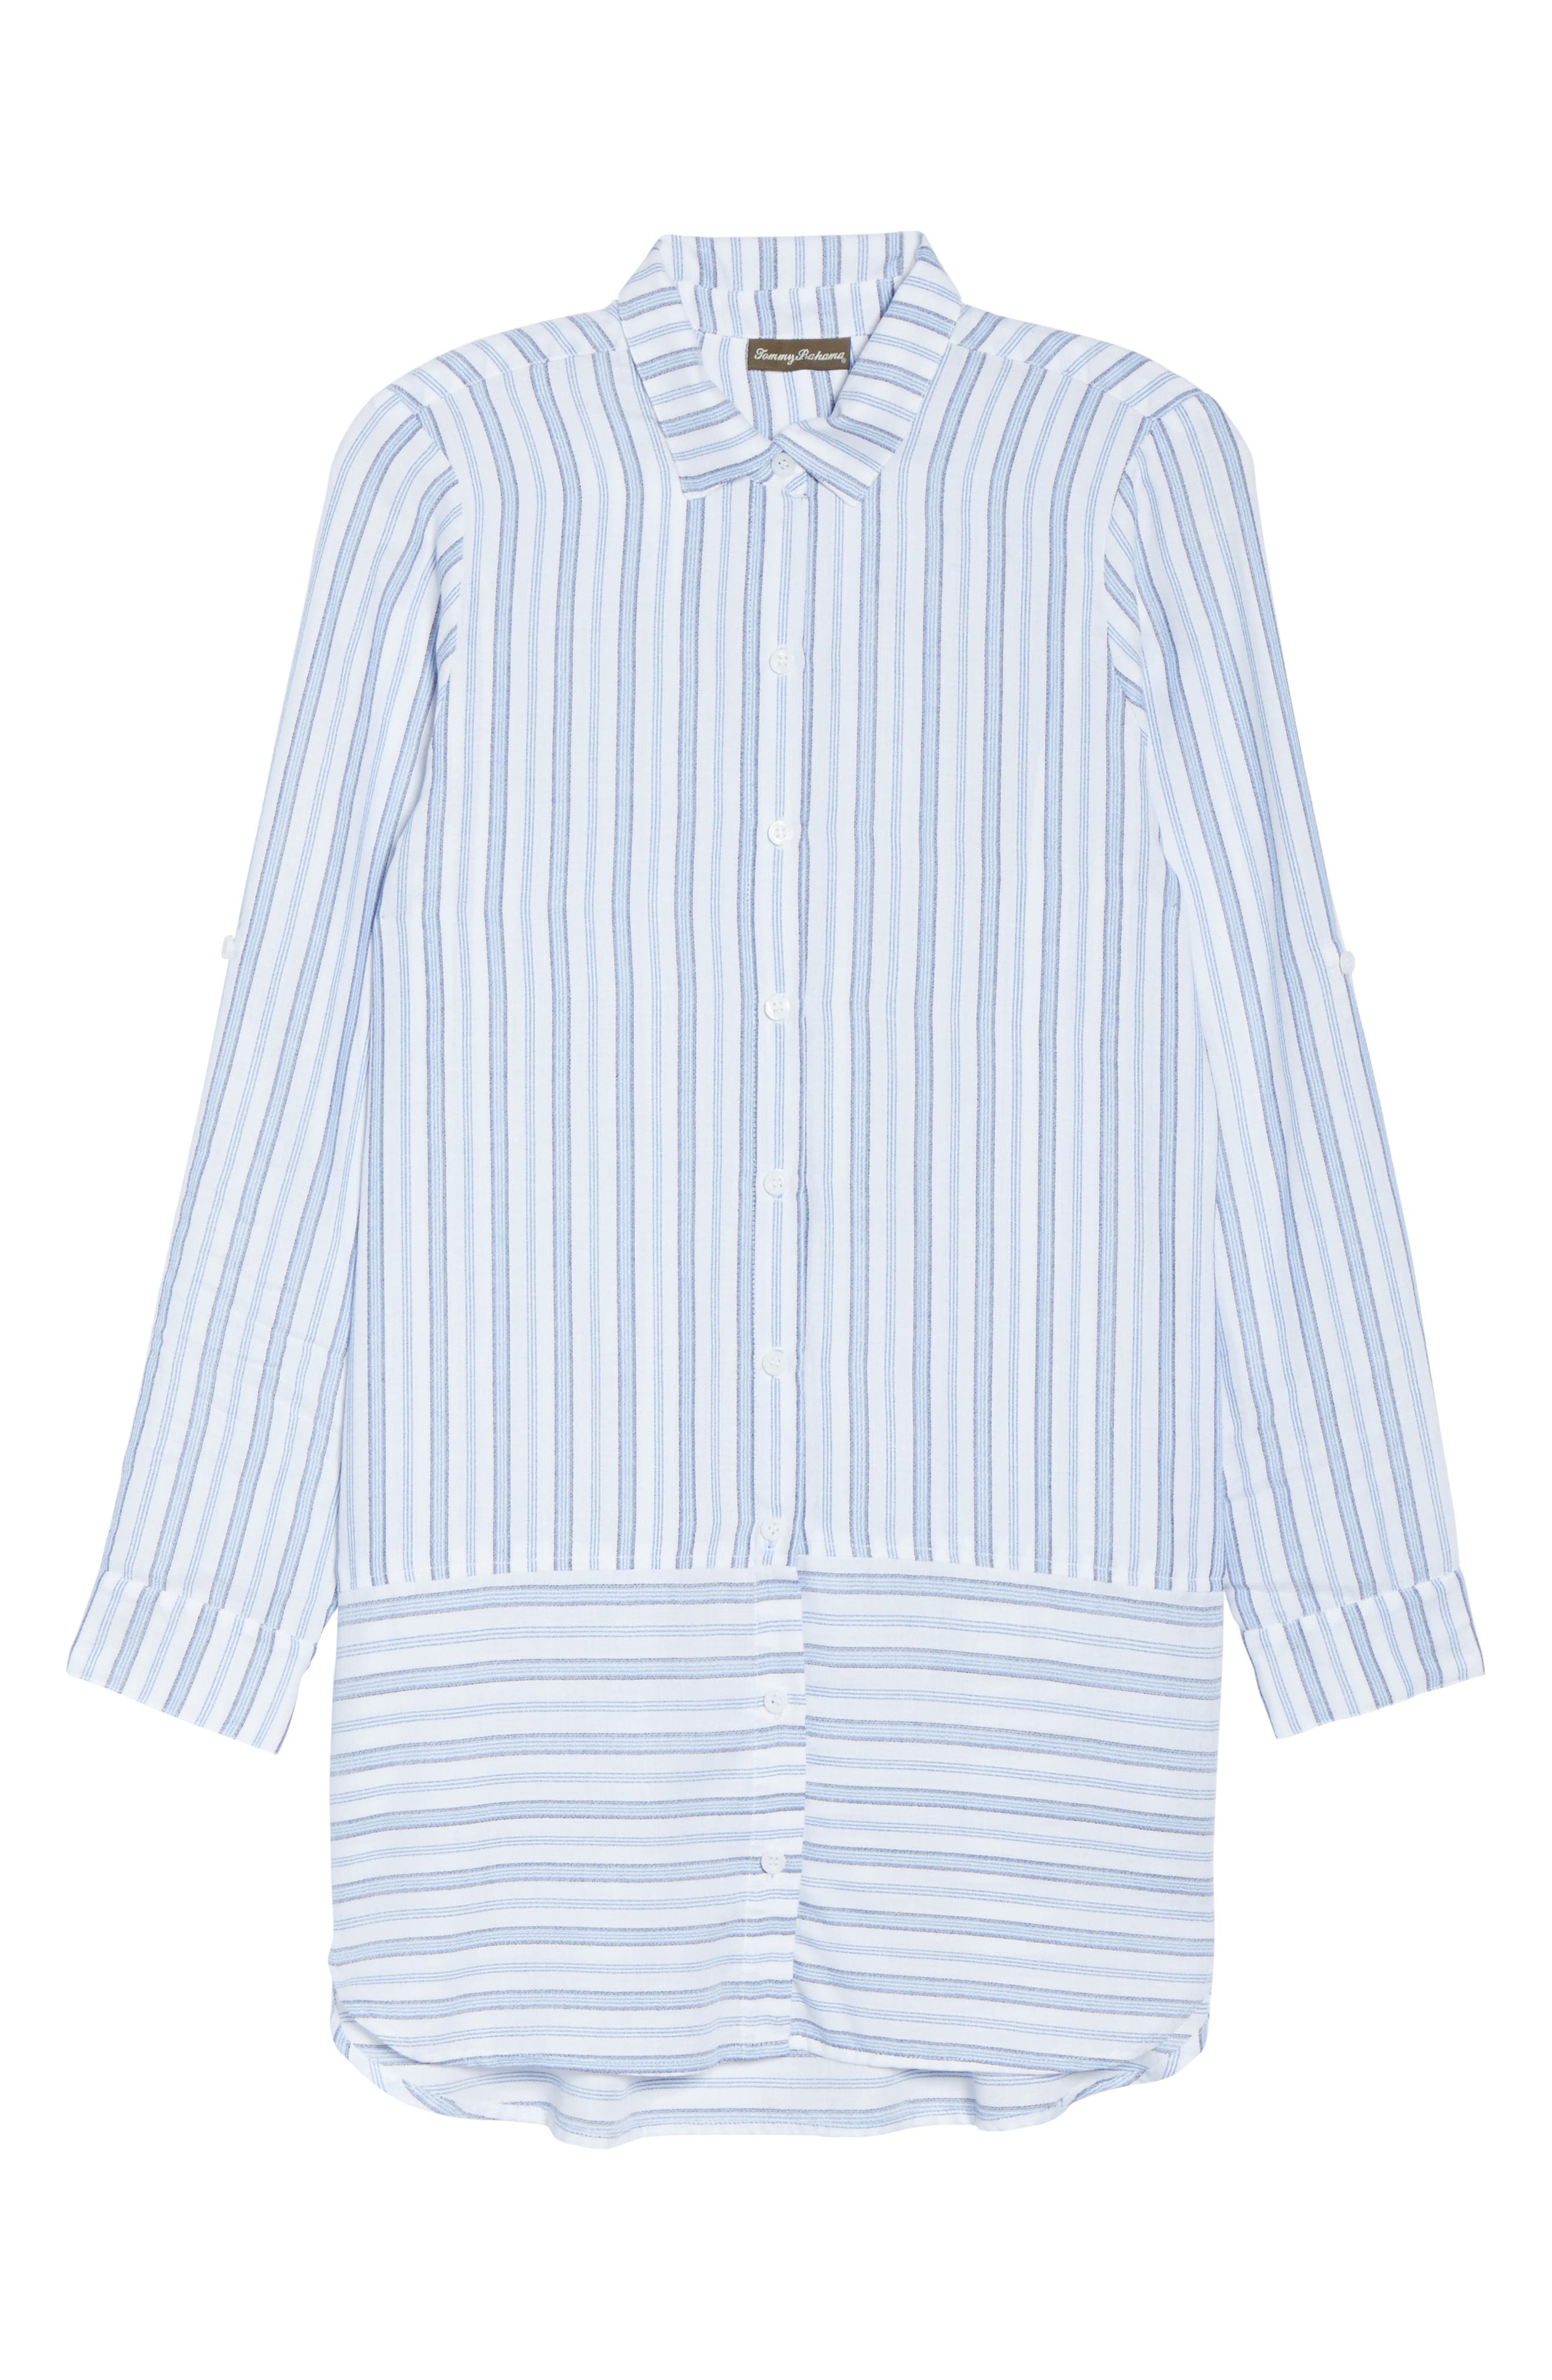 Ticking Stripe Cover-Up Shirtdress,                             Alternate thumbnail 6, color,                             100